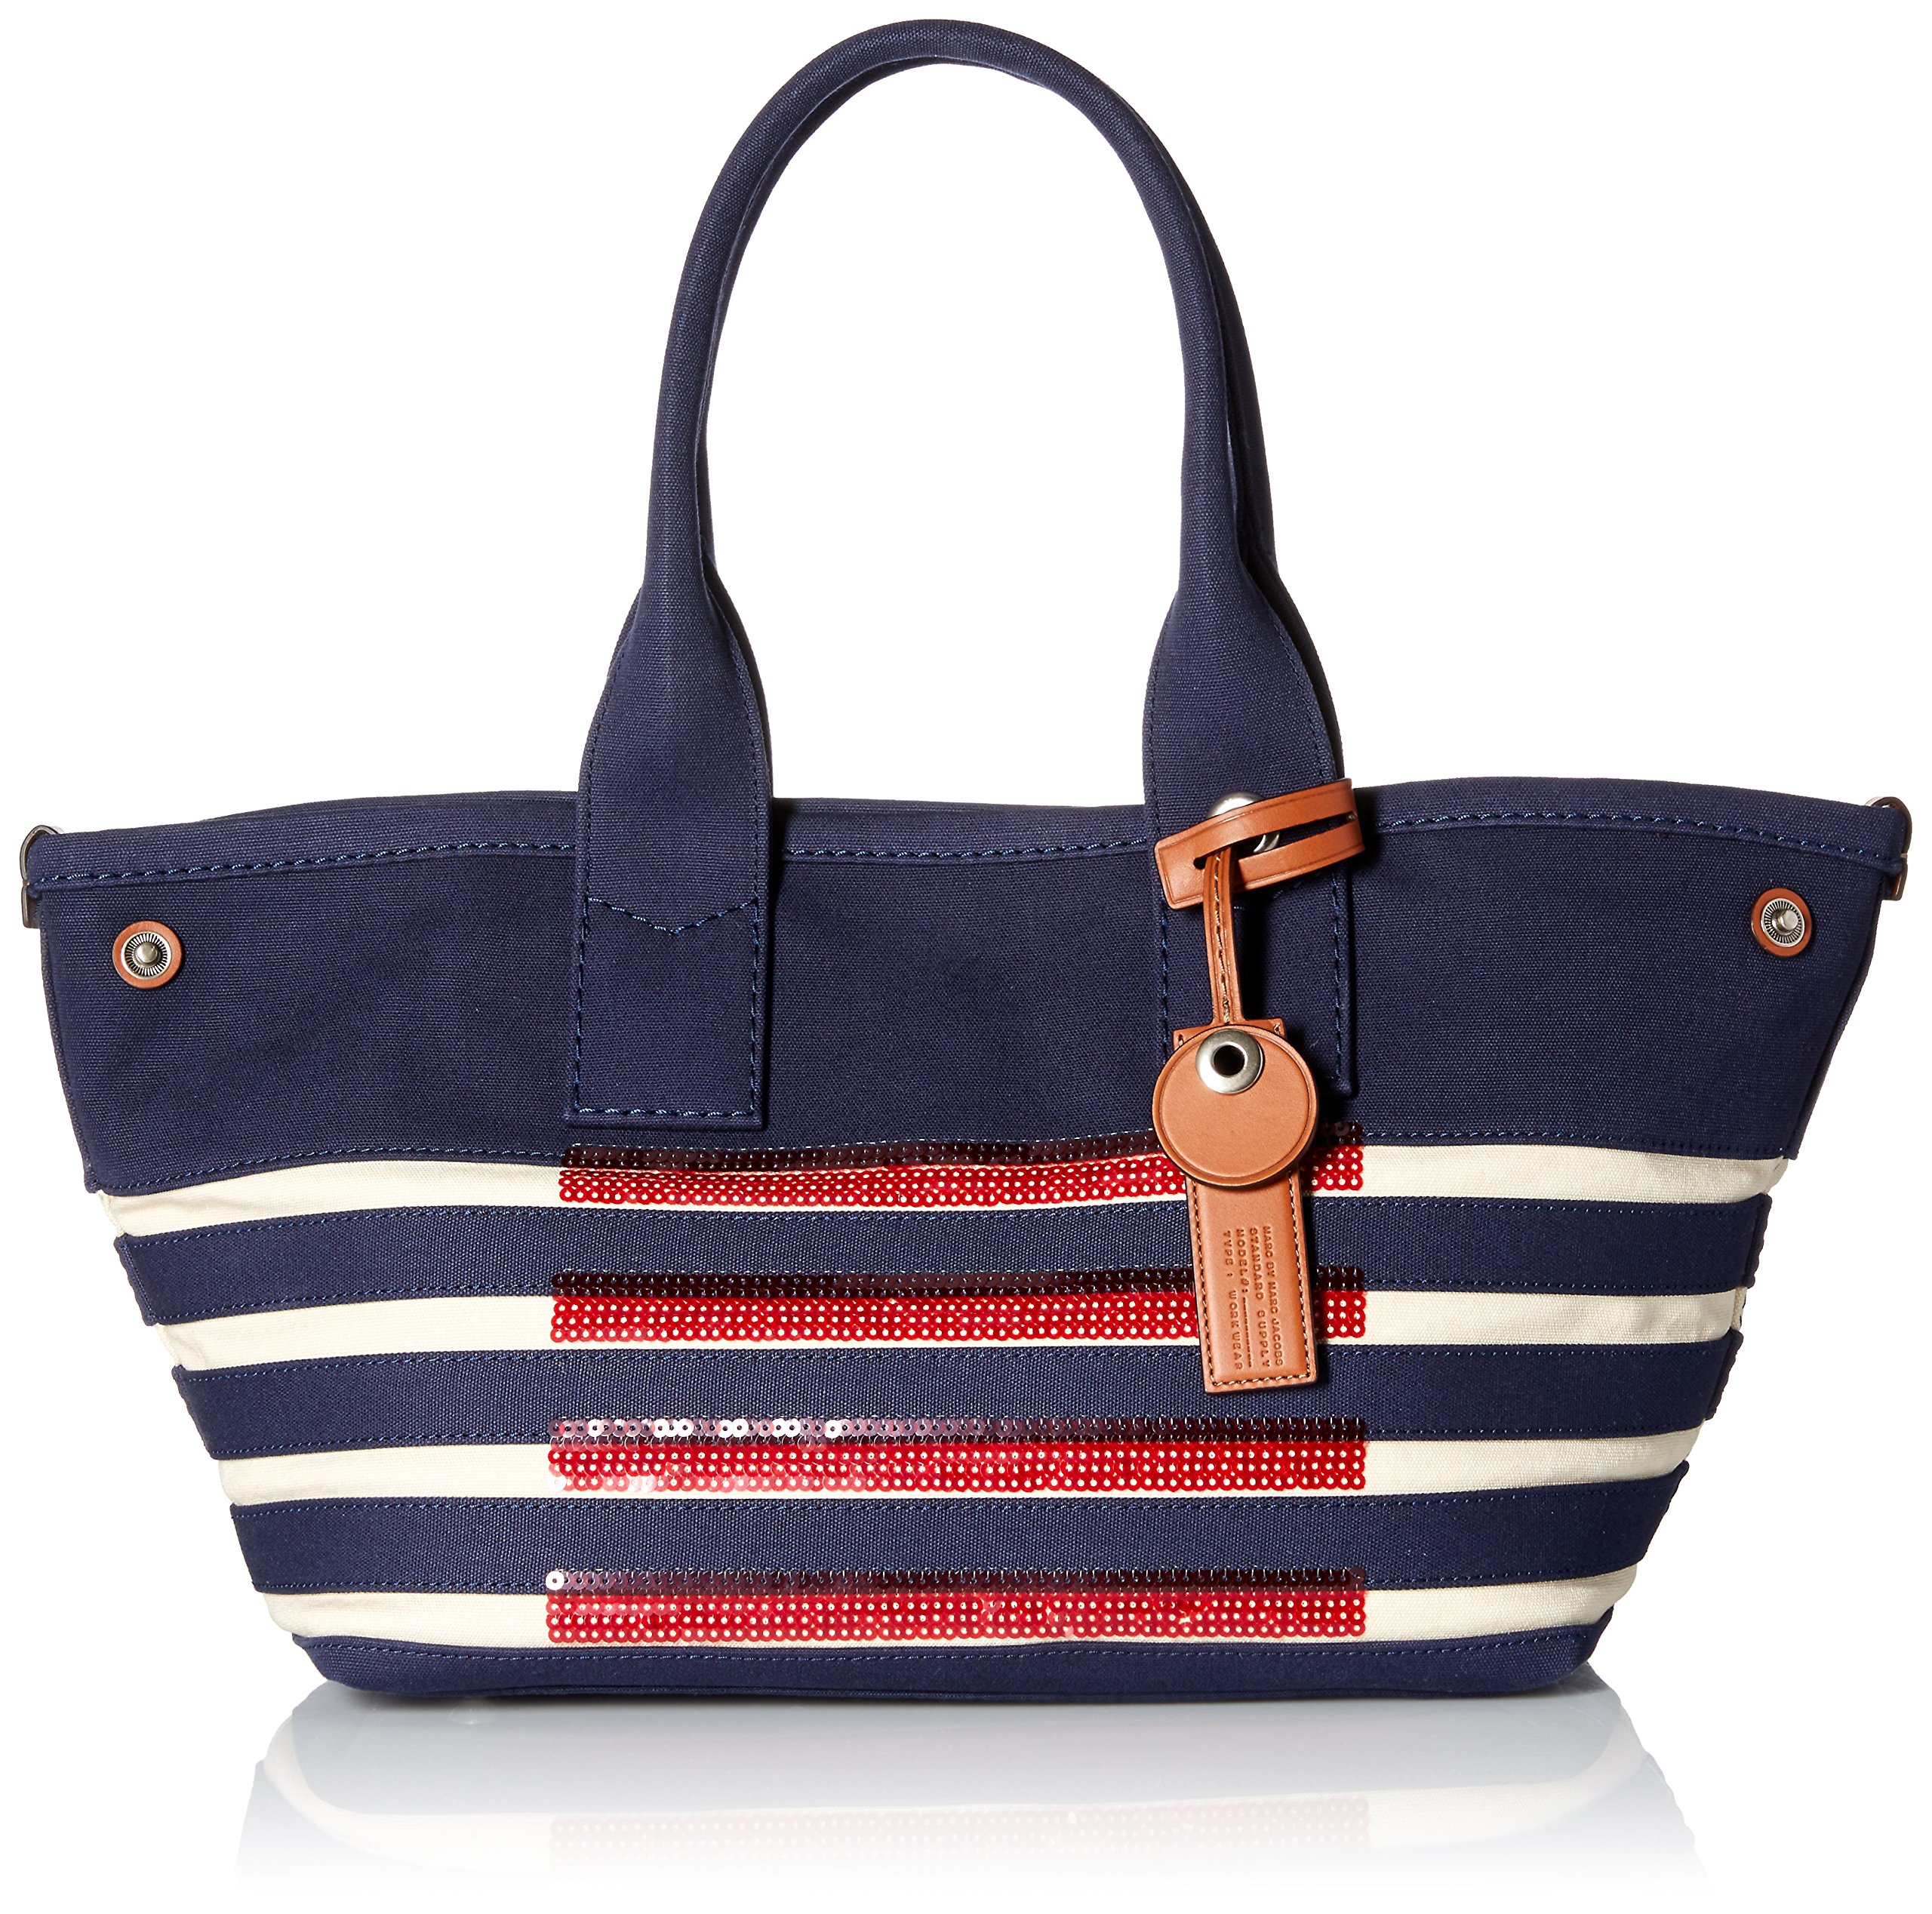 Marc by Marc Jacobs ST Tropez Tote Bag, New Prussian Blue/Ecru, One Size by Marc by Marc Jacobs (Image #1)